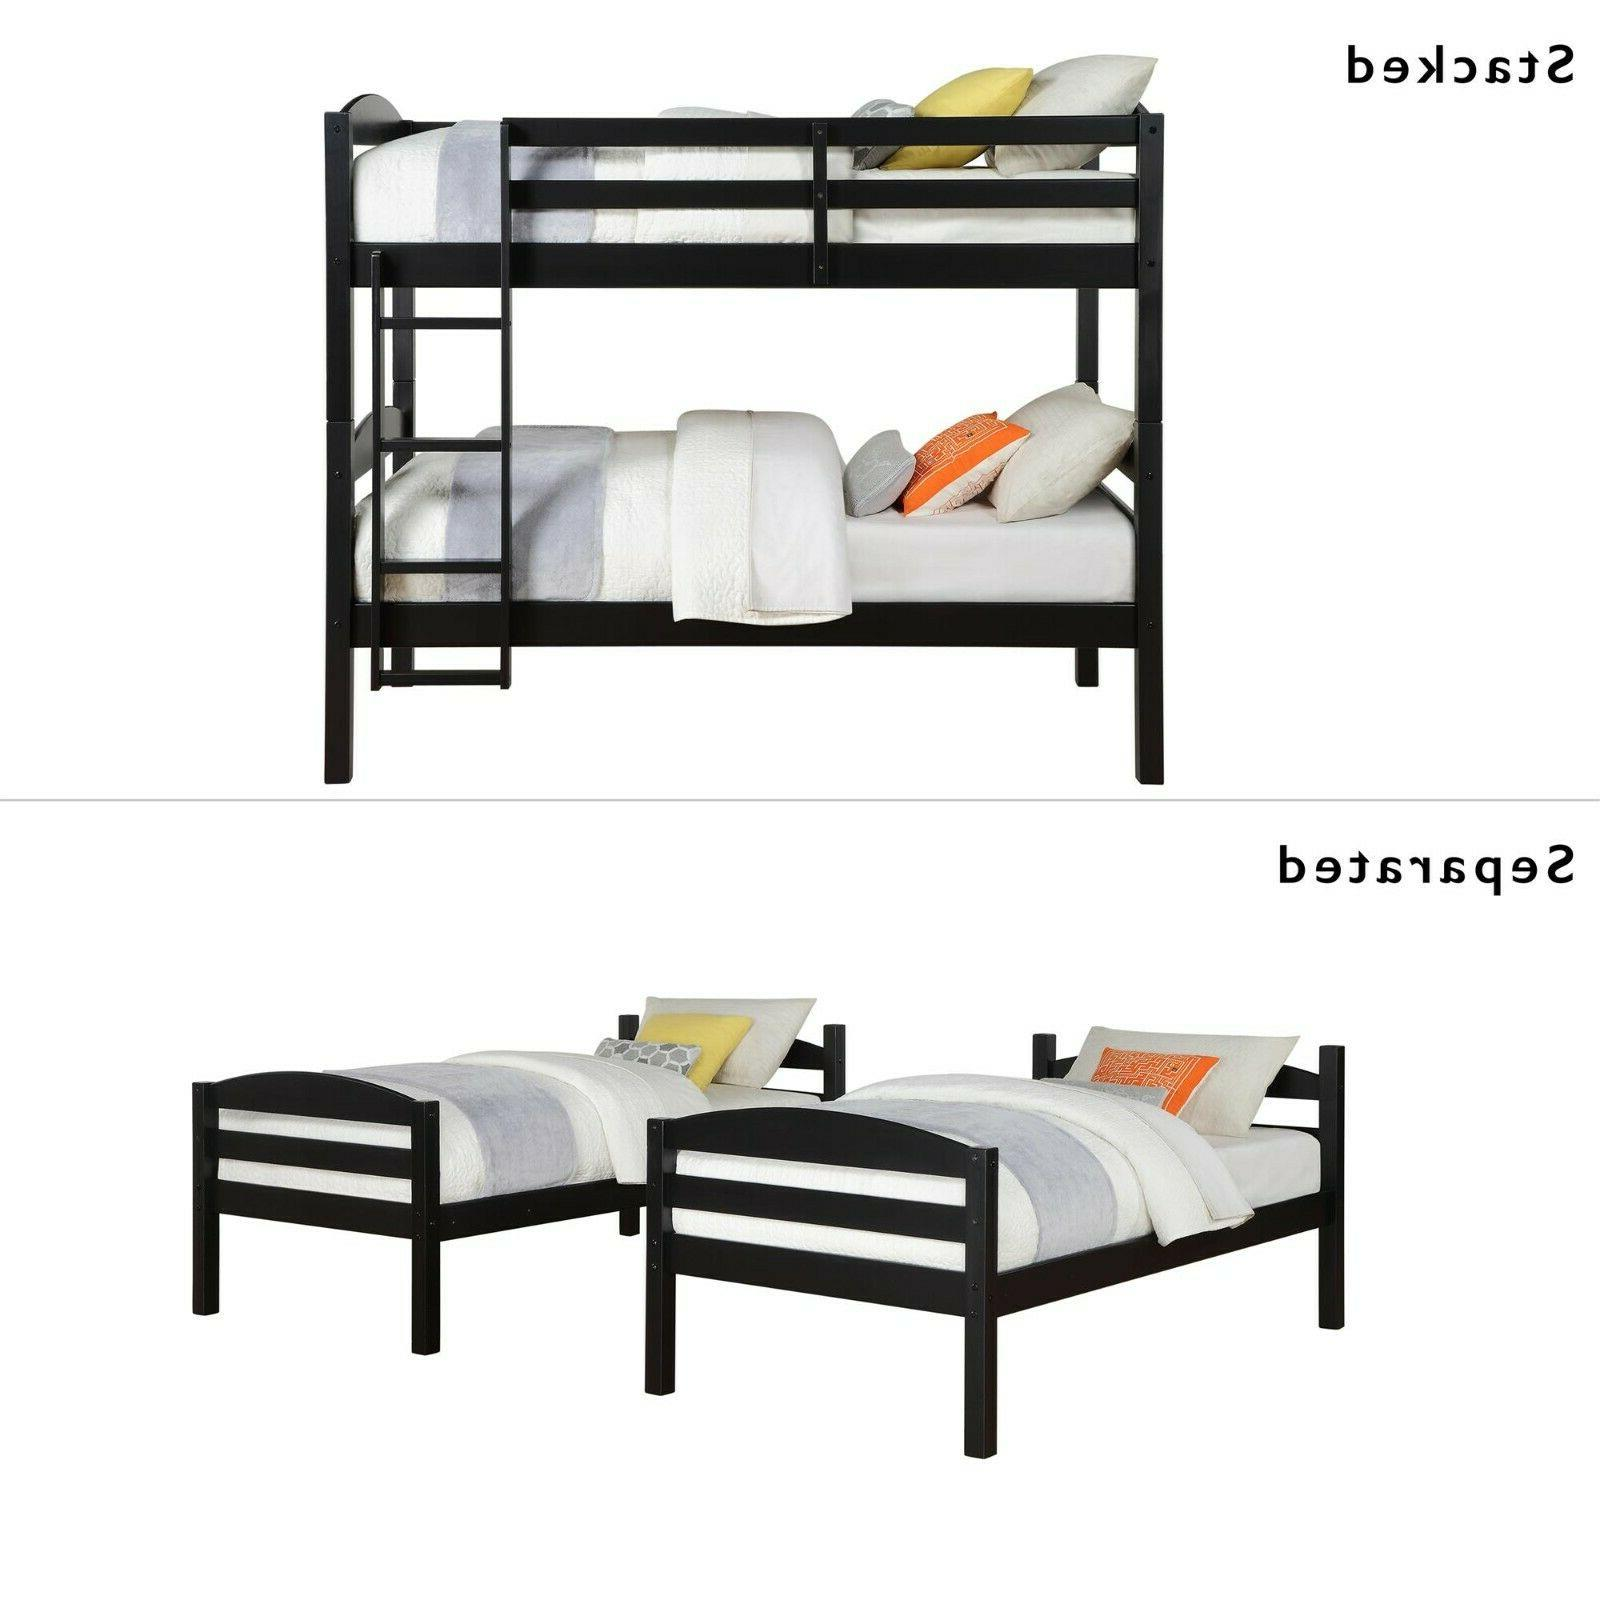 Twin Bunk Beds for Girls Boys Wood Ladder &